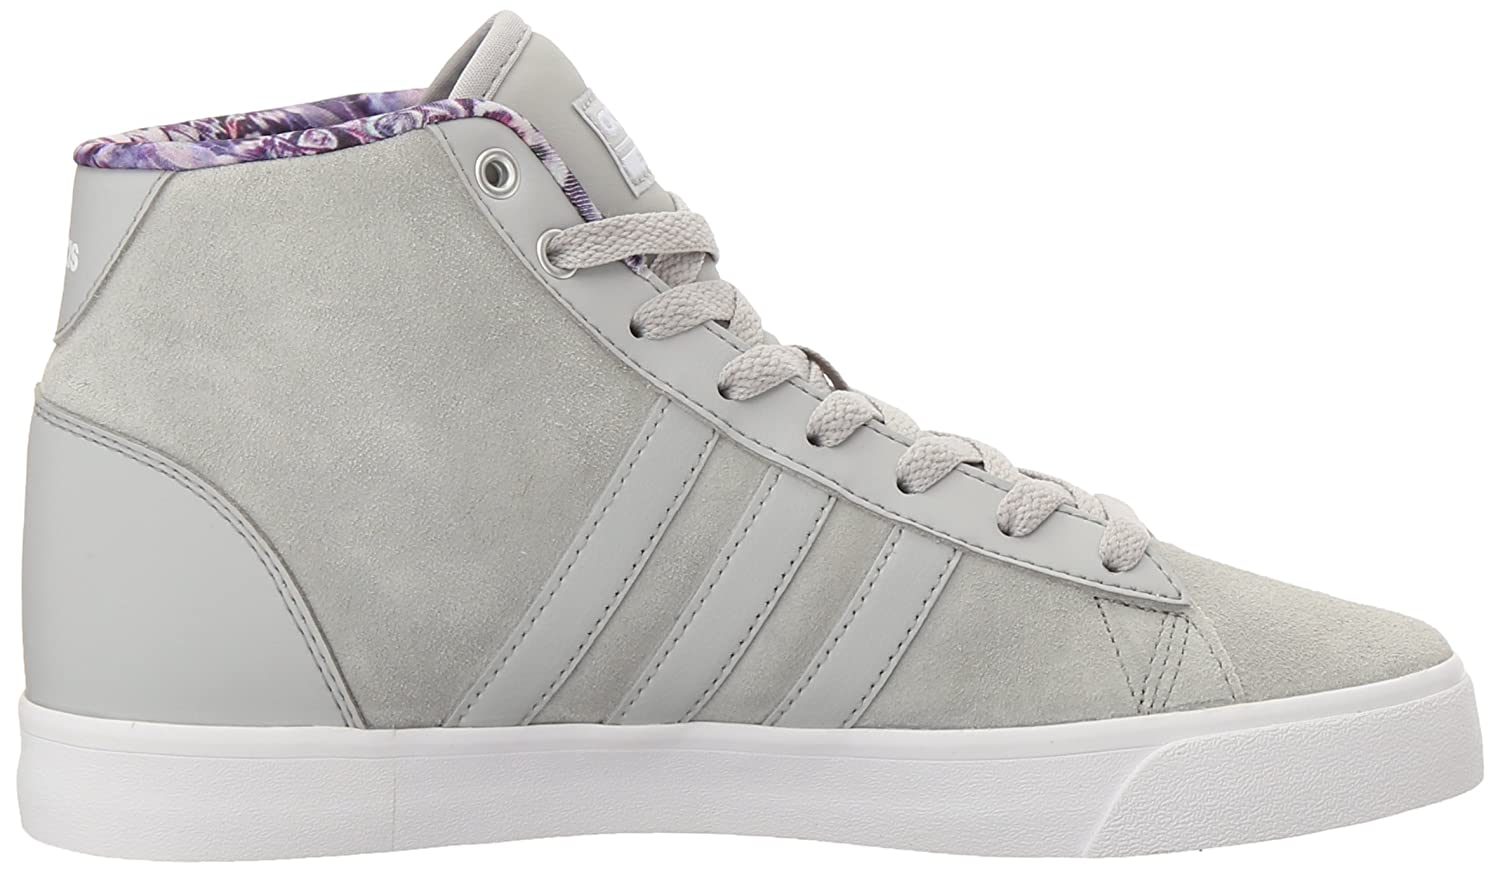 adidas Women's Cloudfoam Daily Qt Mid Fashion Sneakers B01HSIR8ZQ 10 M US|Clear Onix/White